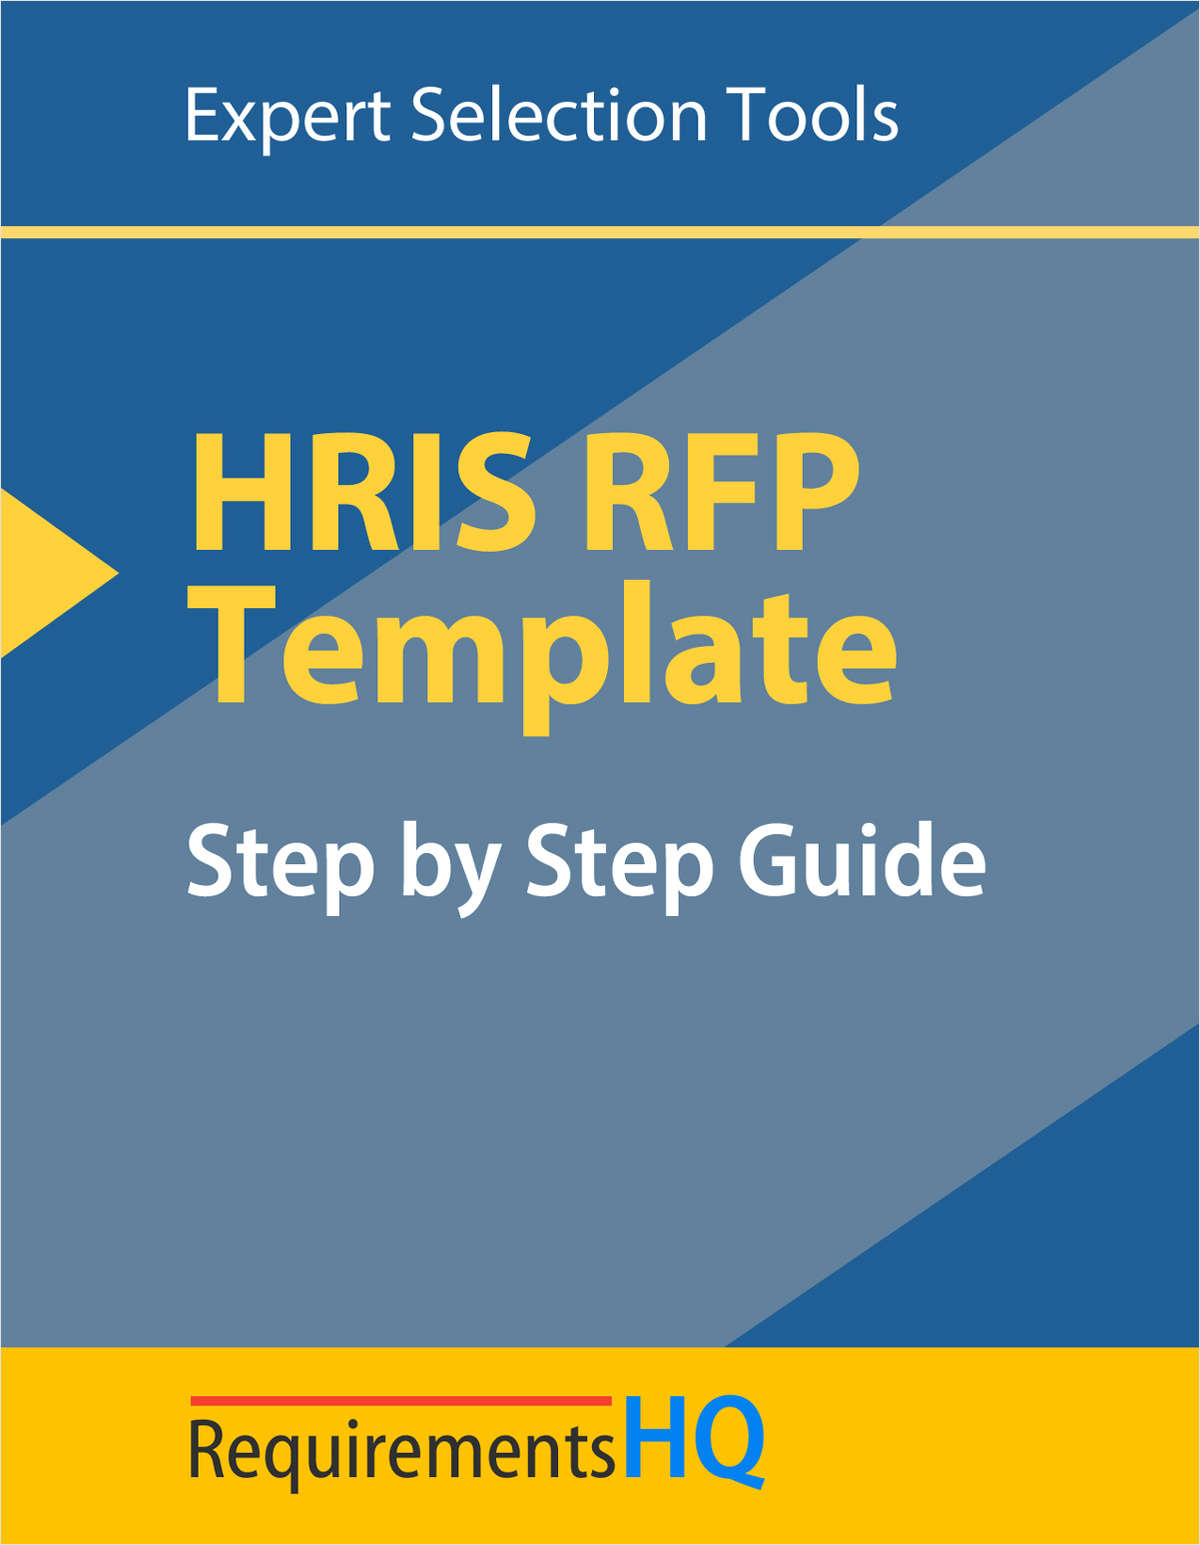 HRIS RFP Template and Step by Step Guide